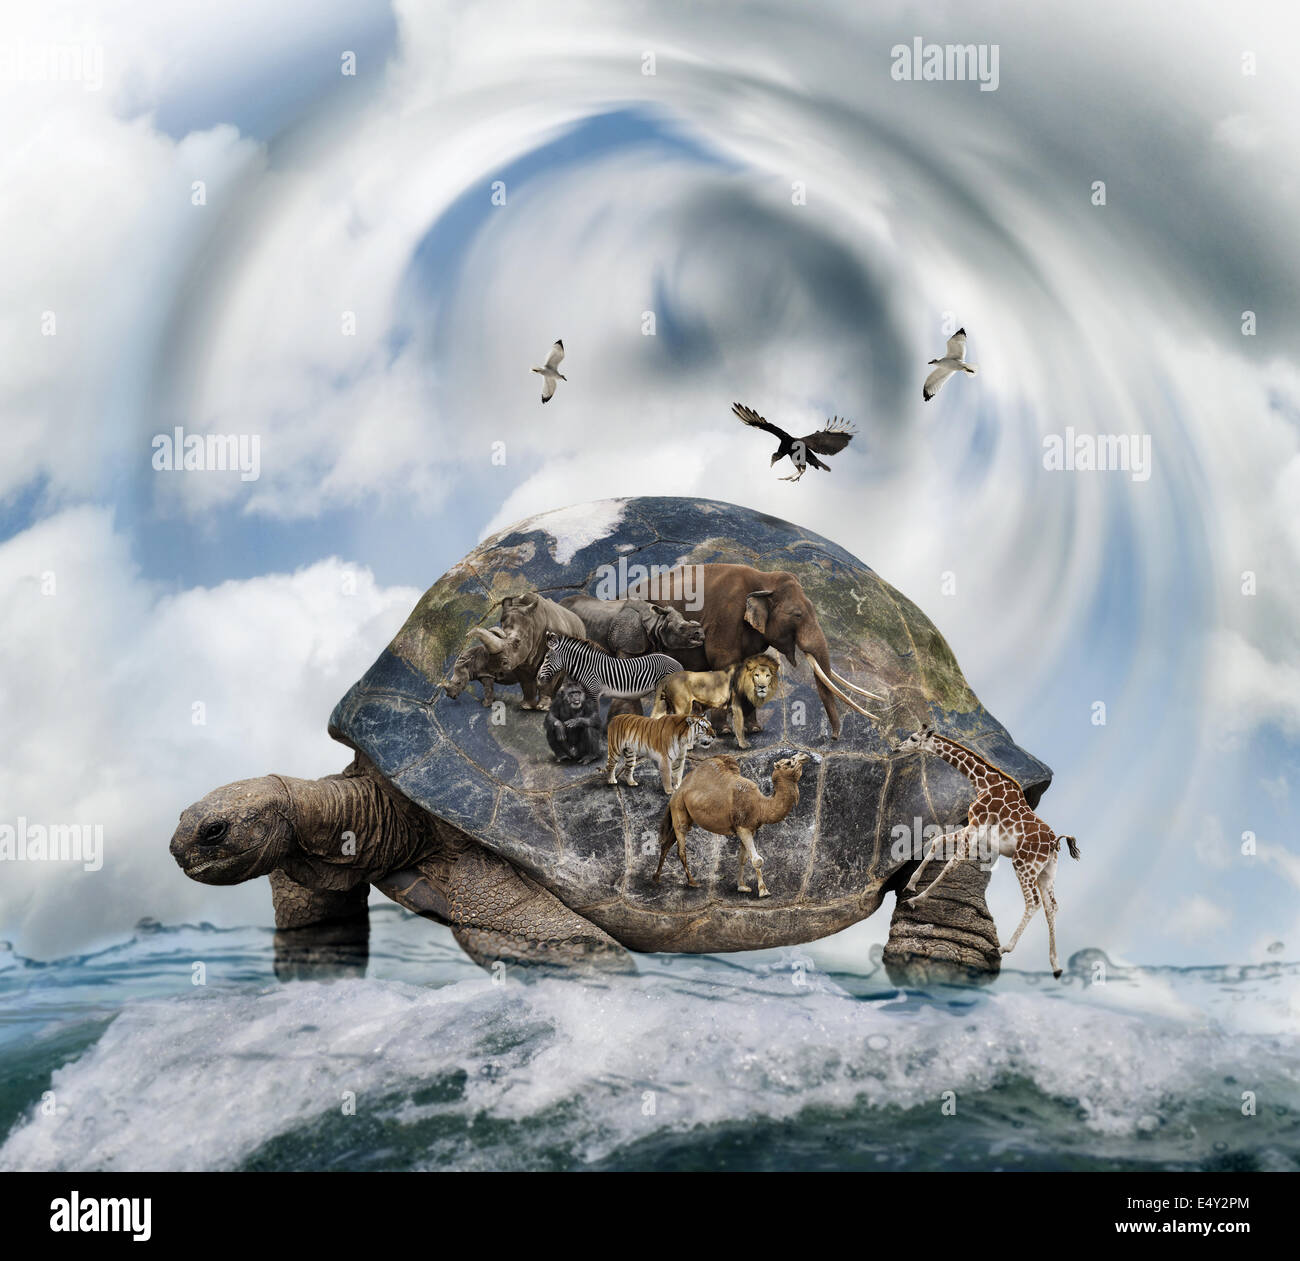 World Turtle Concept - Stock Image